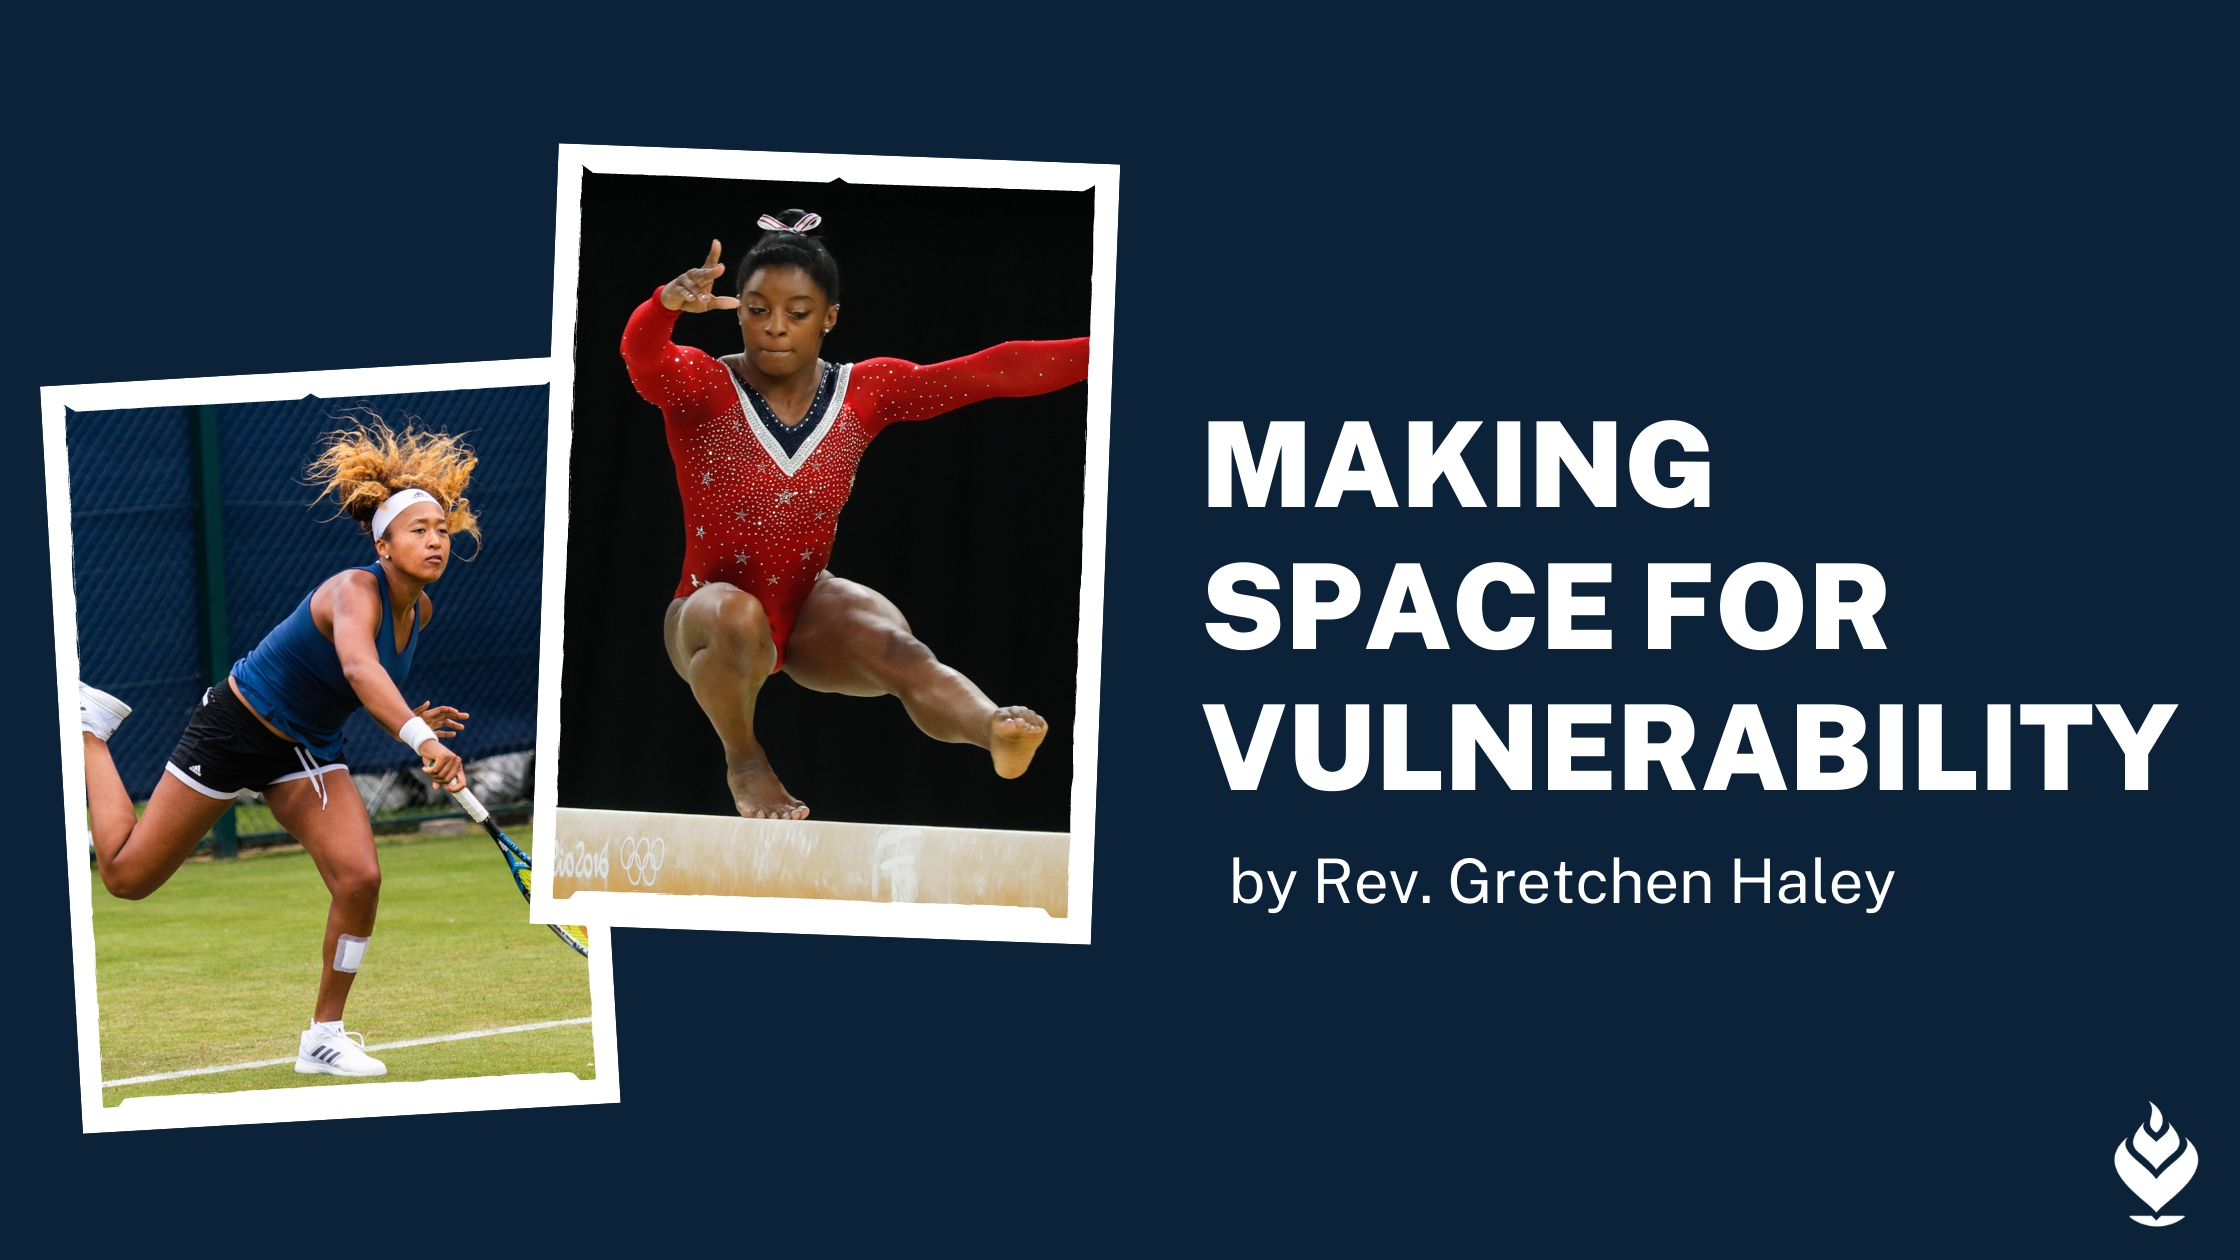 Making Space for Vulnerability